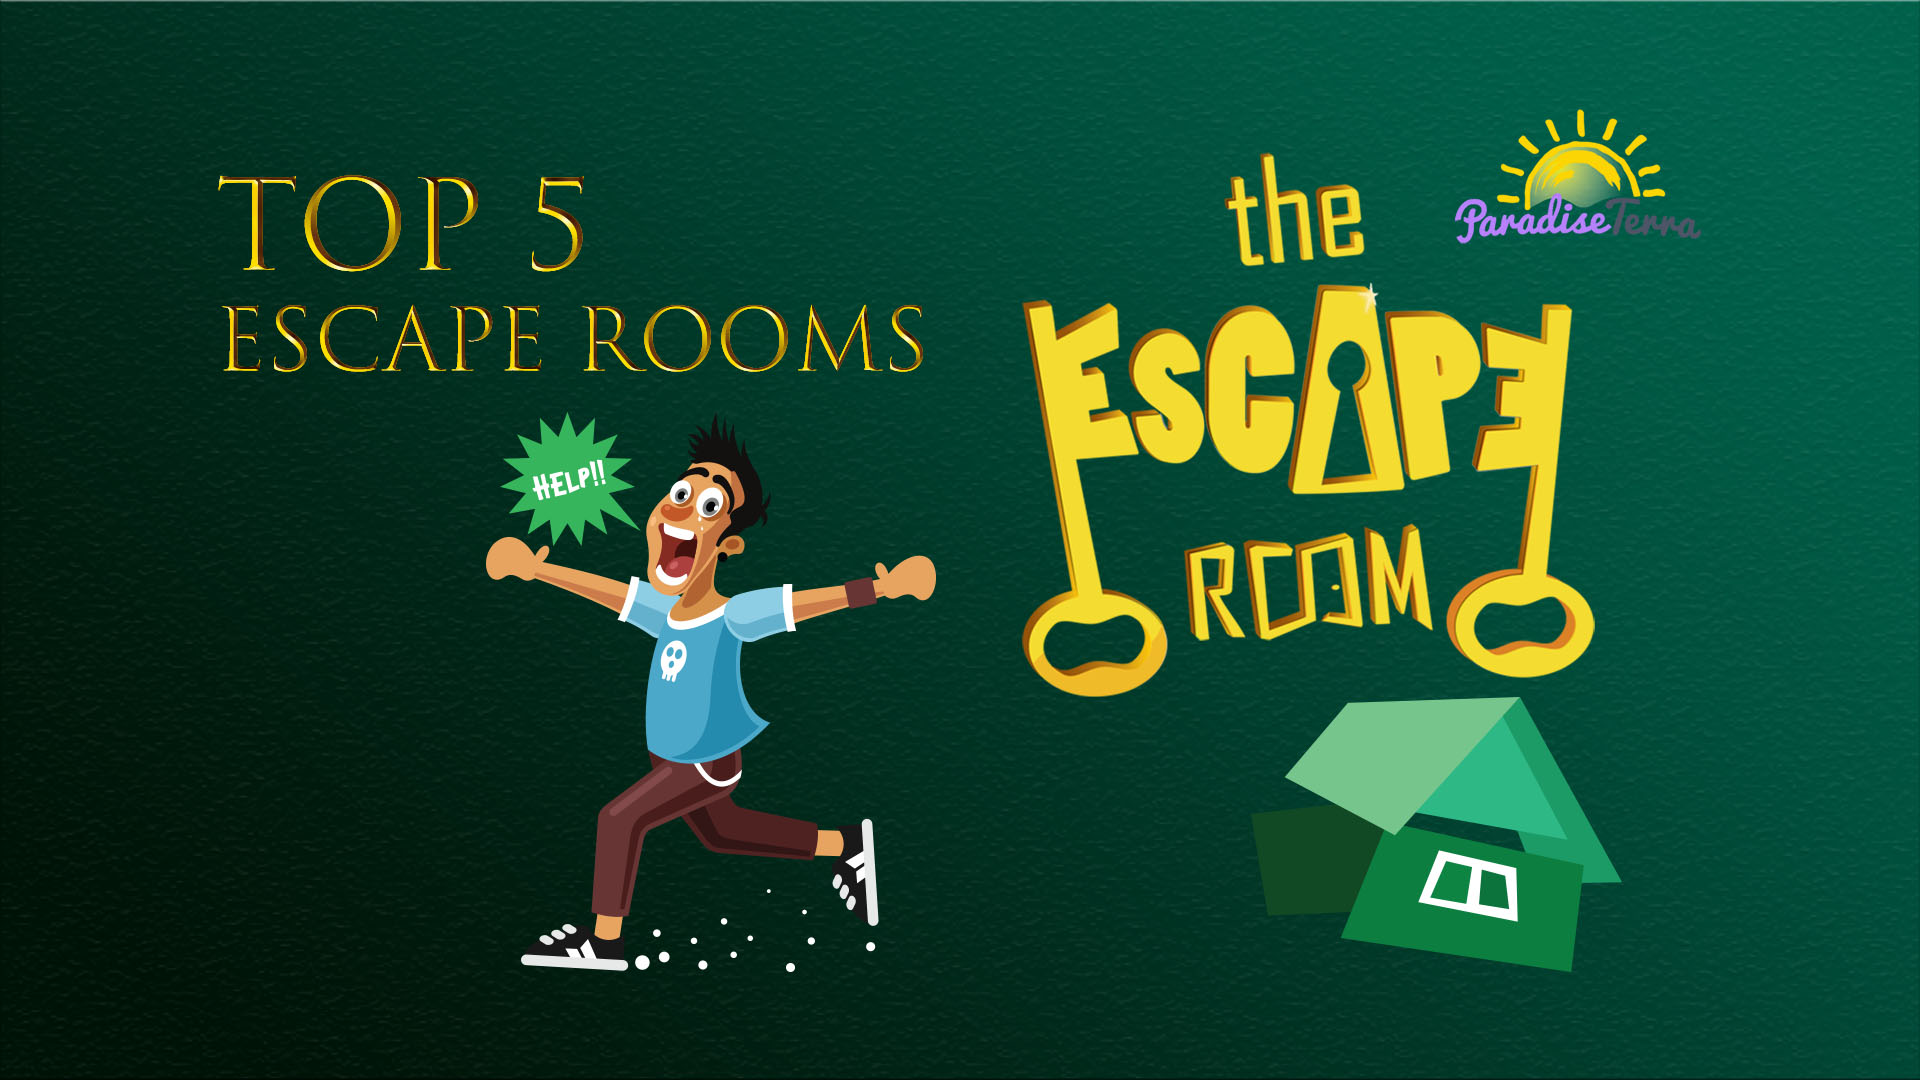 Top 5 Escape Rooms